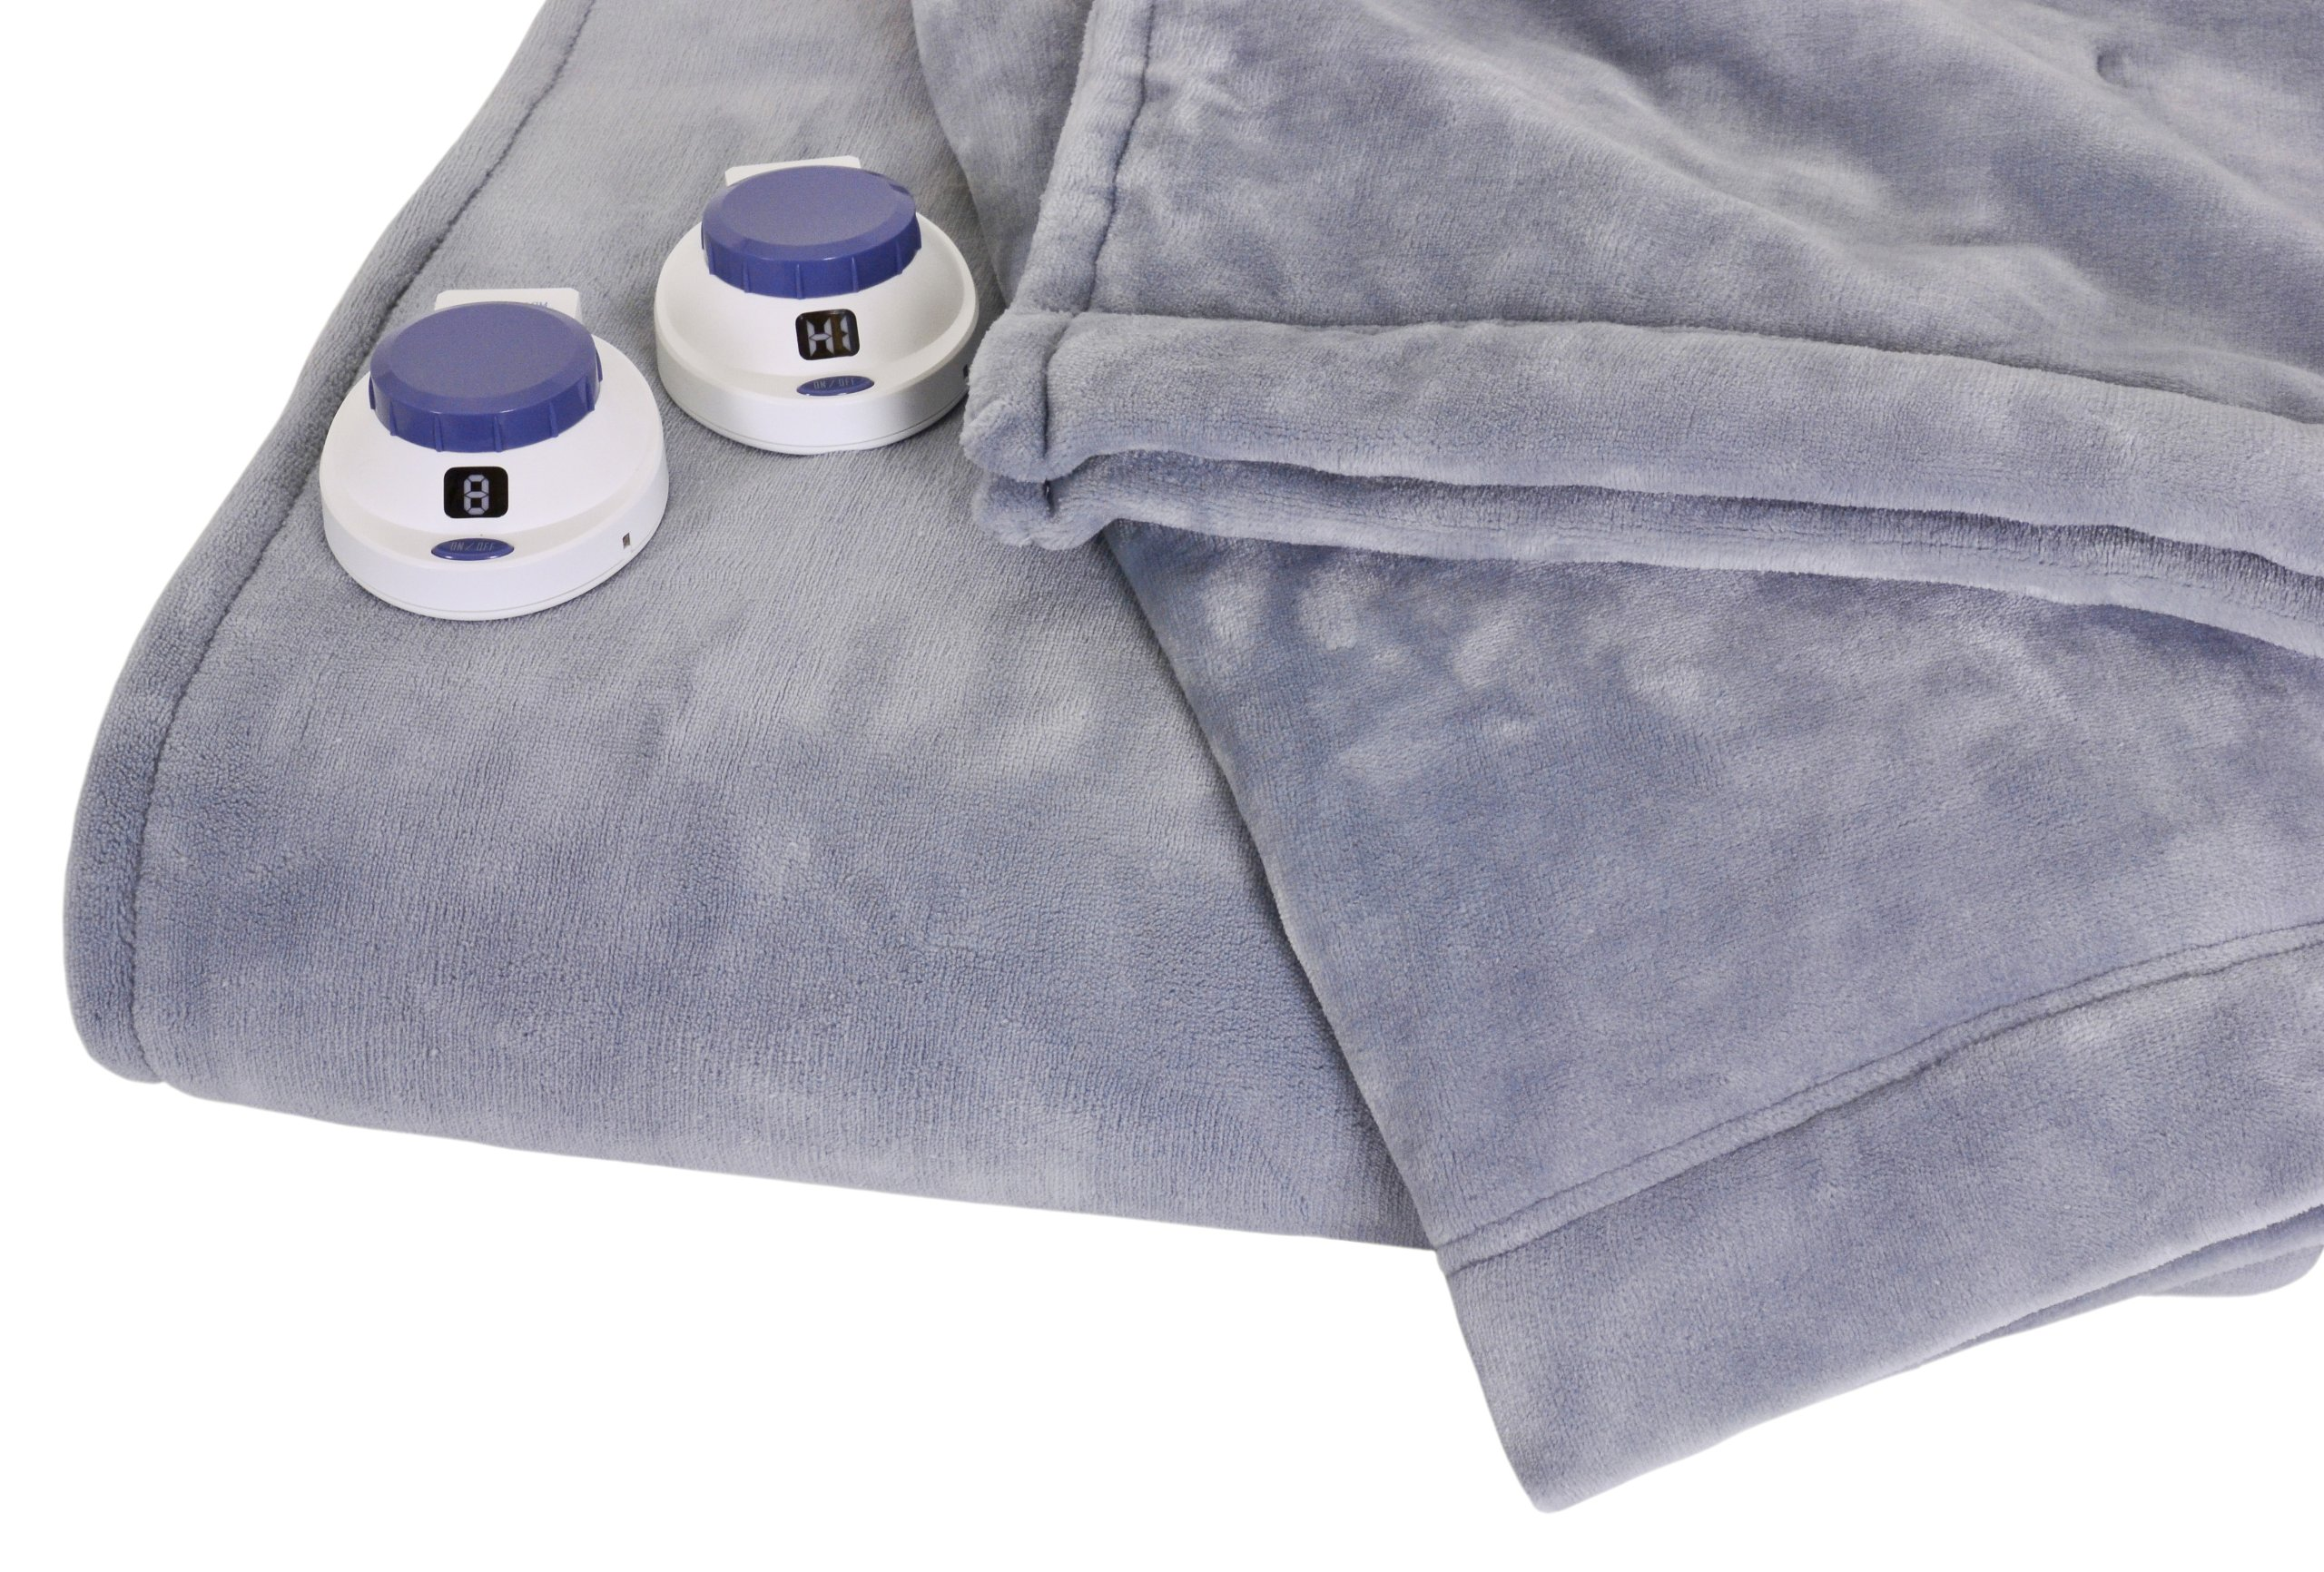 Soft Heat Luxurious Macromink Fleece Low-Voltage Electric Heated Blanket, King Size, Blue by SoftHeat